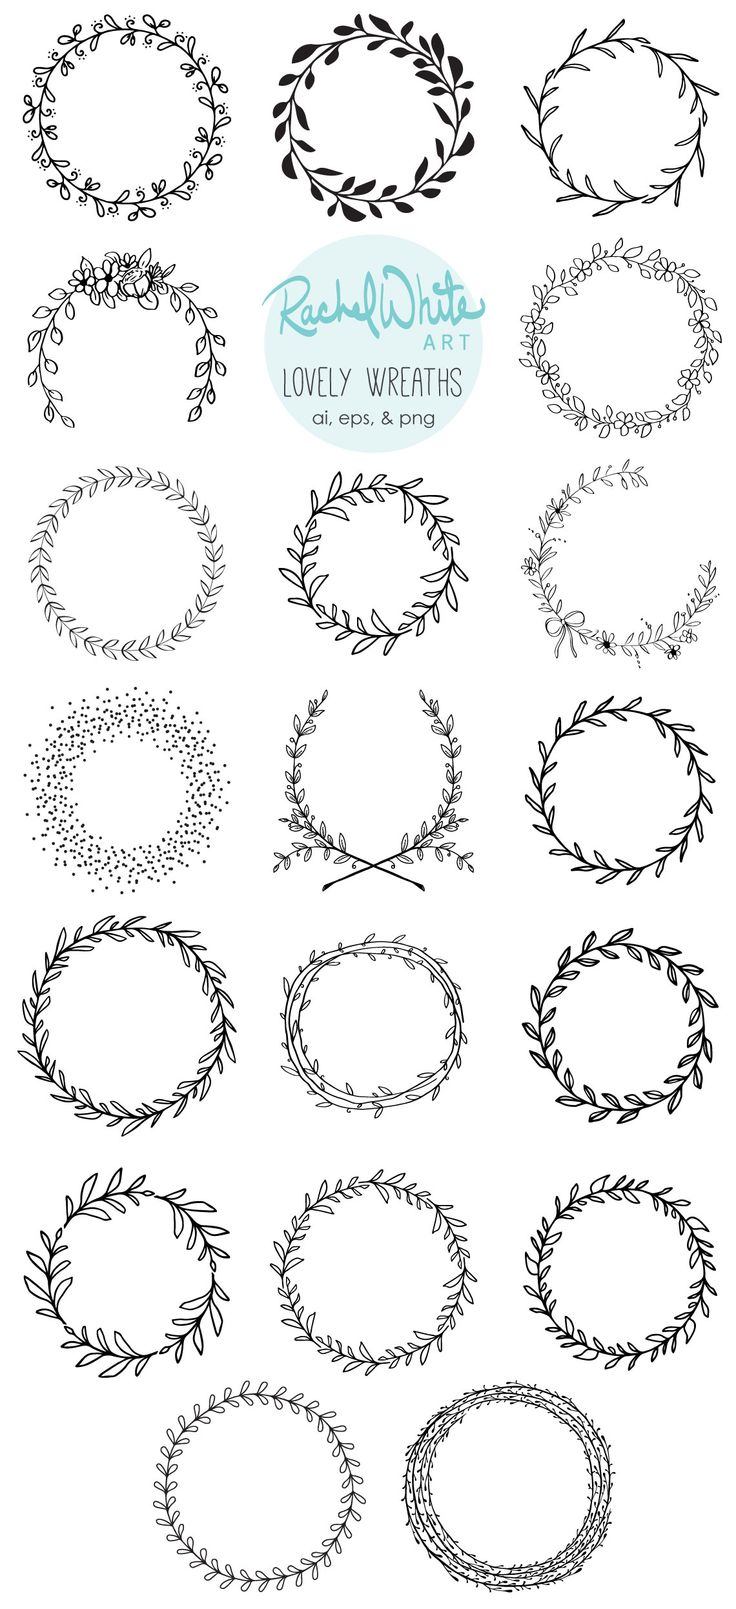 Lovely Wreaths Vector Illustrations – AI EPS and PNG – 19 unique images – Instant Download